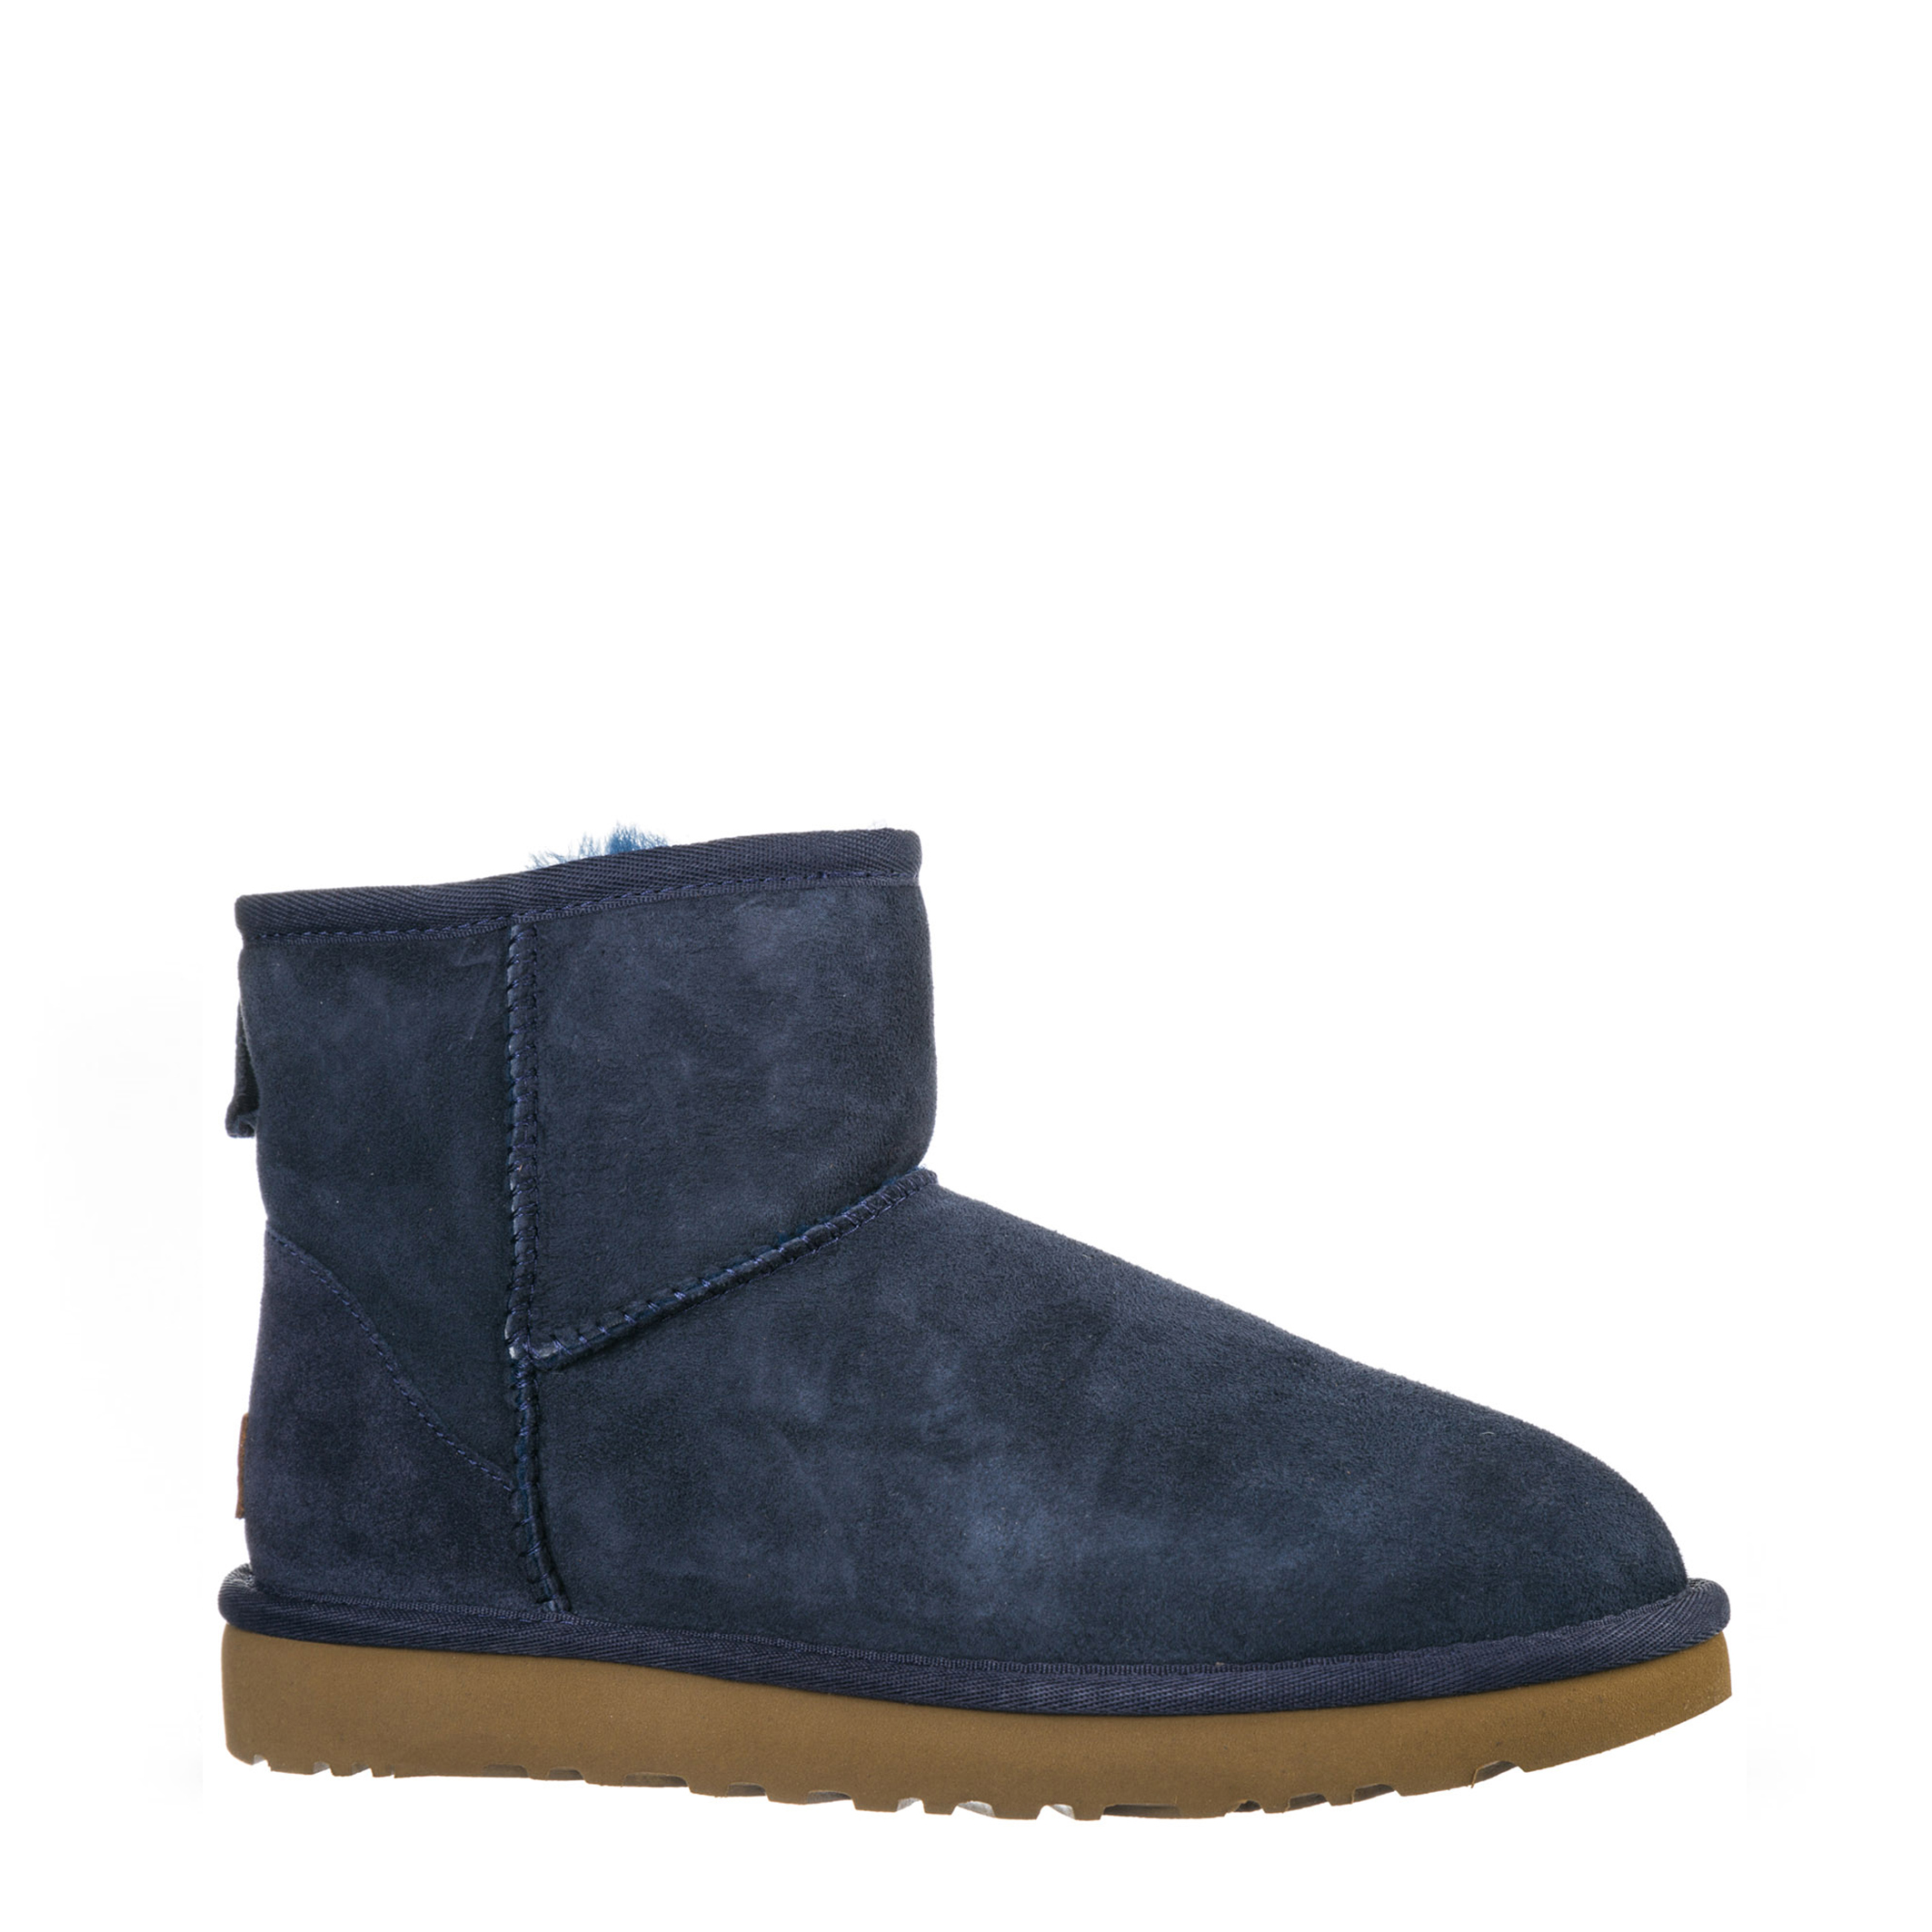 Chaussures  Ugg 1016222 blue